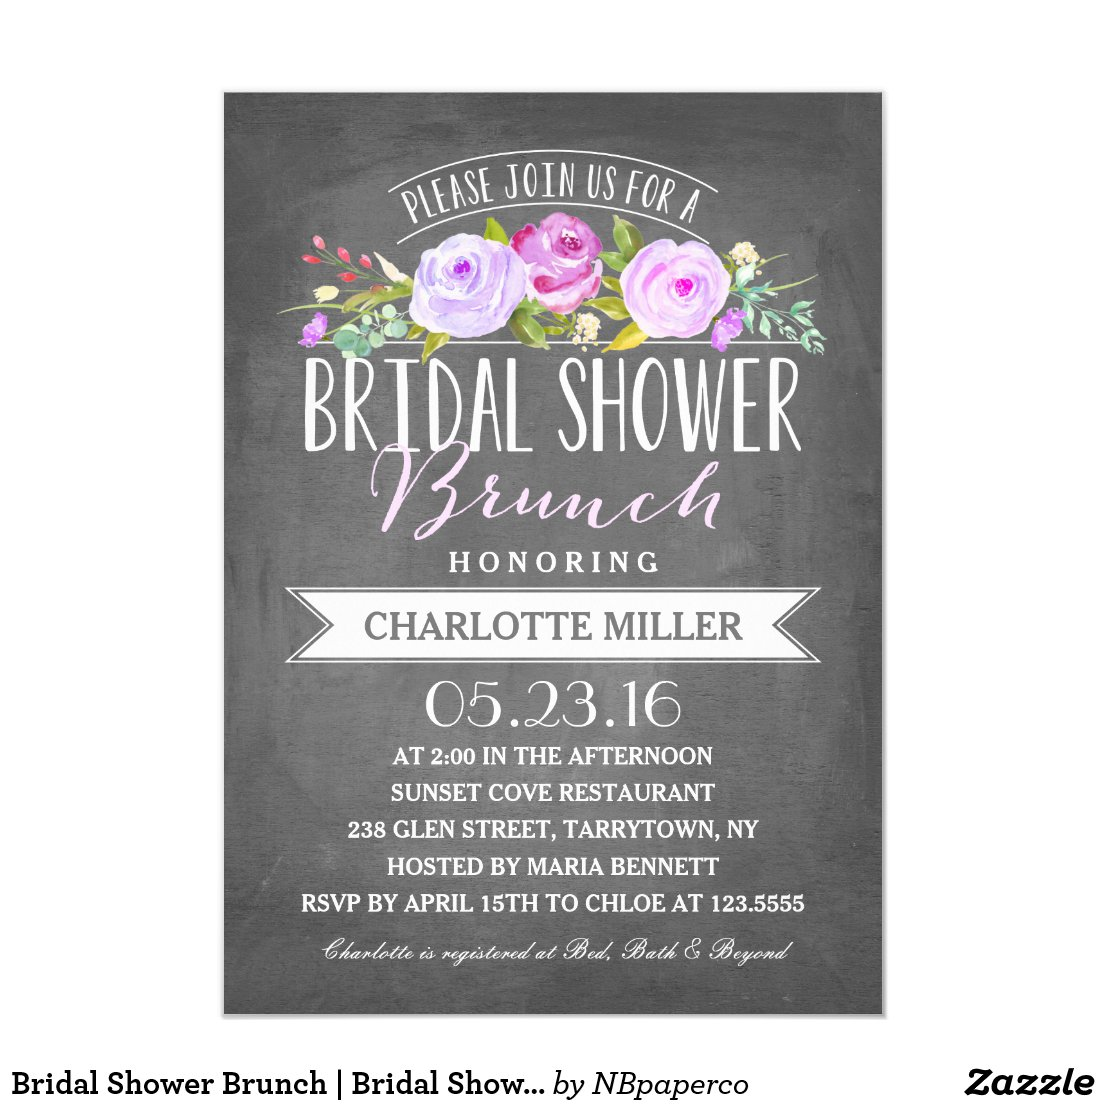 Bridal Shower Brunch | Bridal Shower Invitation